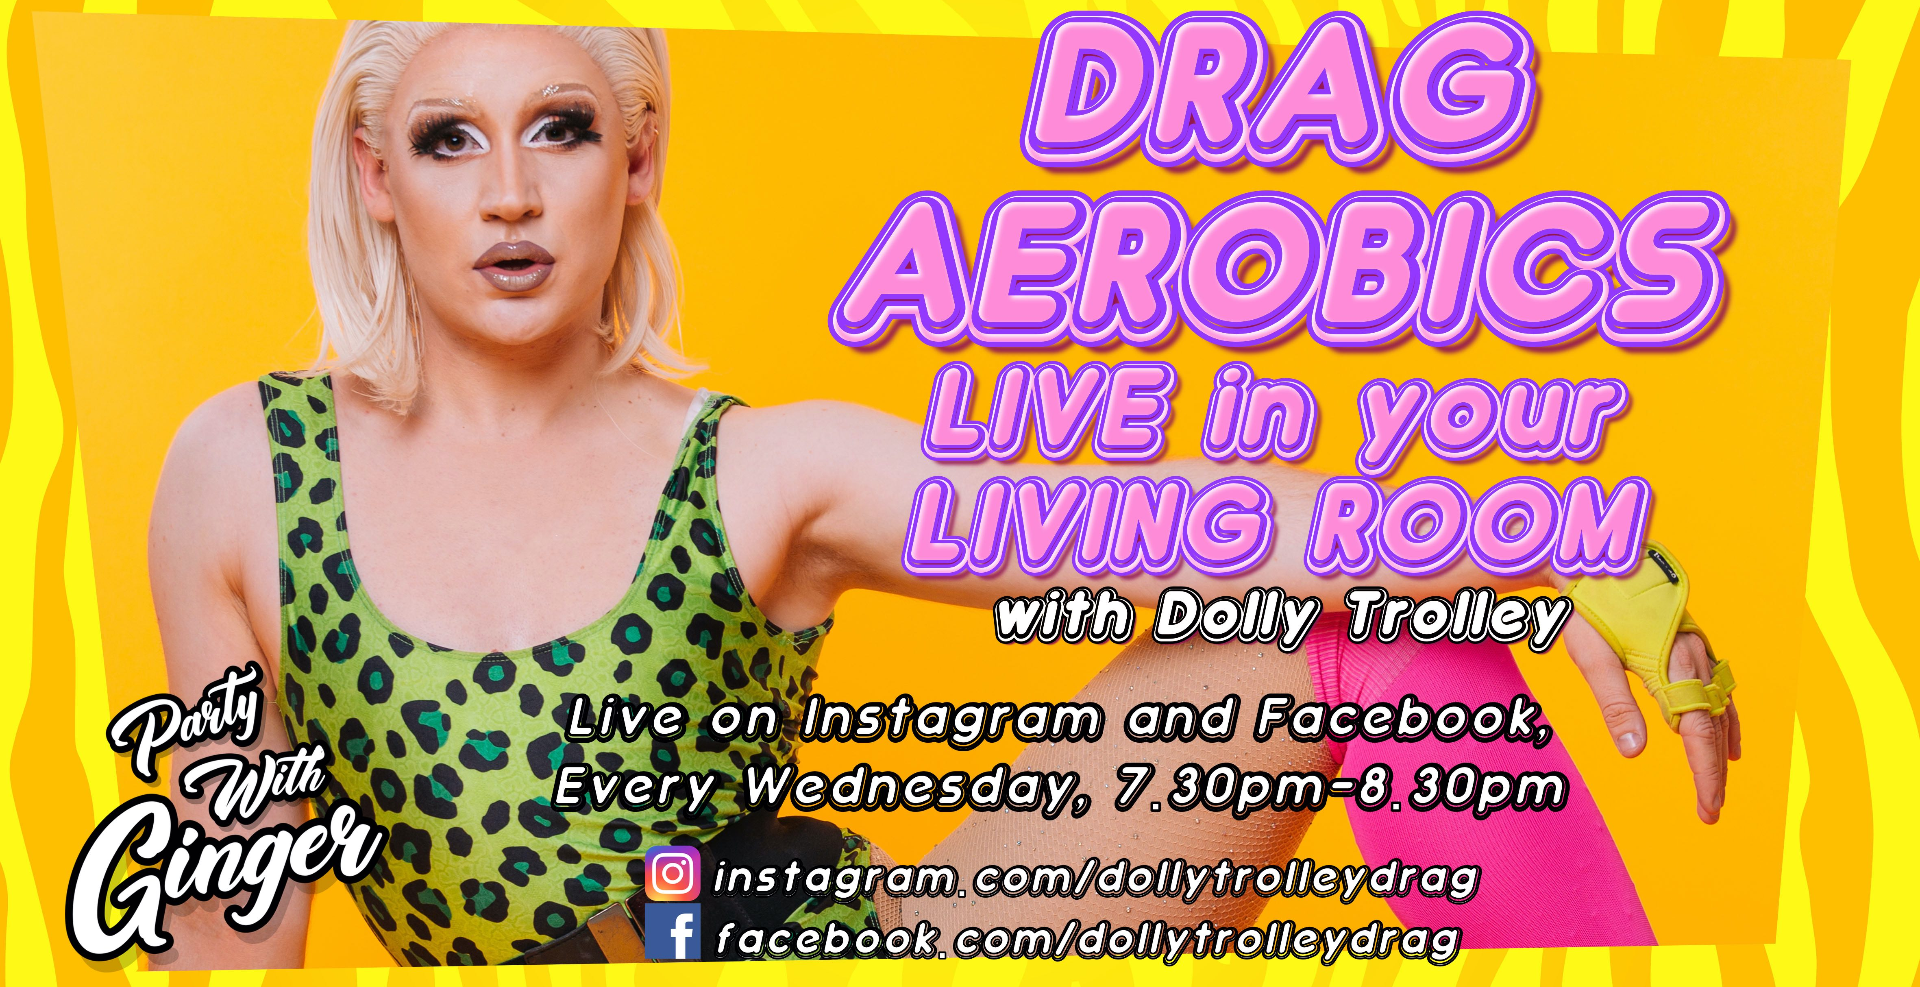 Drag Aerobics: Live in your Living Room